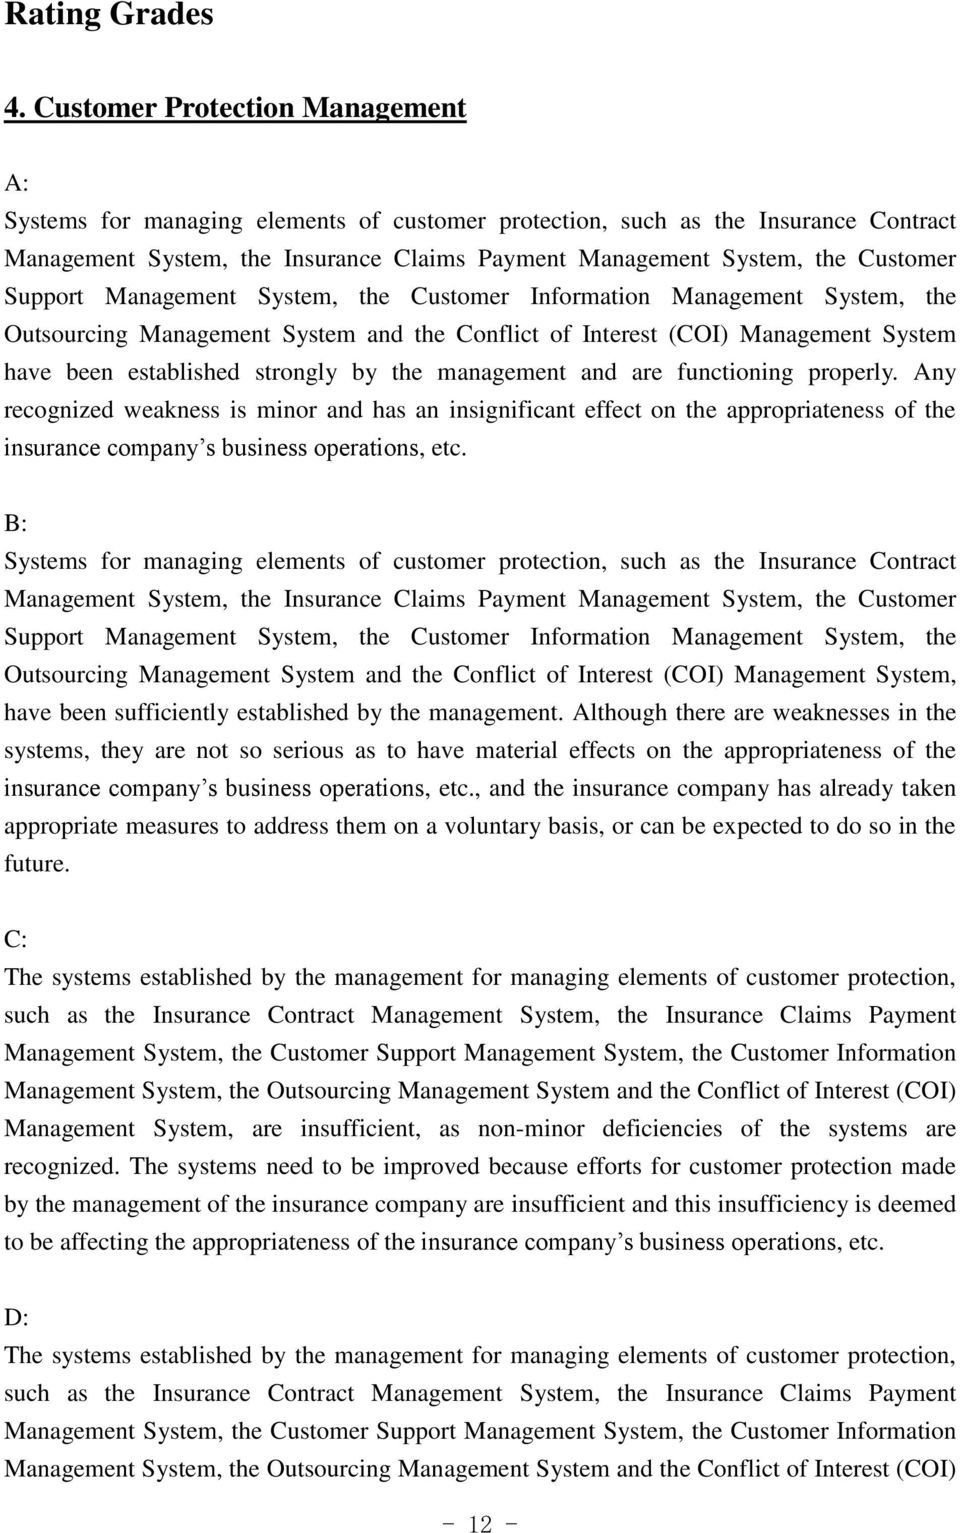 Support Management System, the Customer Information Management System, the Outsourcing Management System and the Conflict of Interest (COI) Management System have been established strongly by the